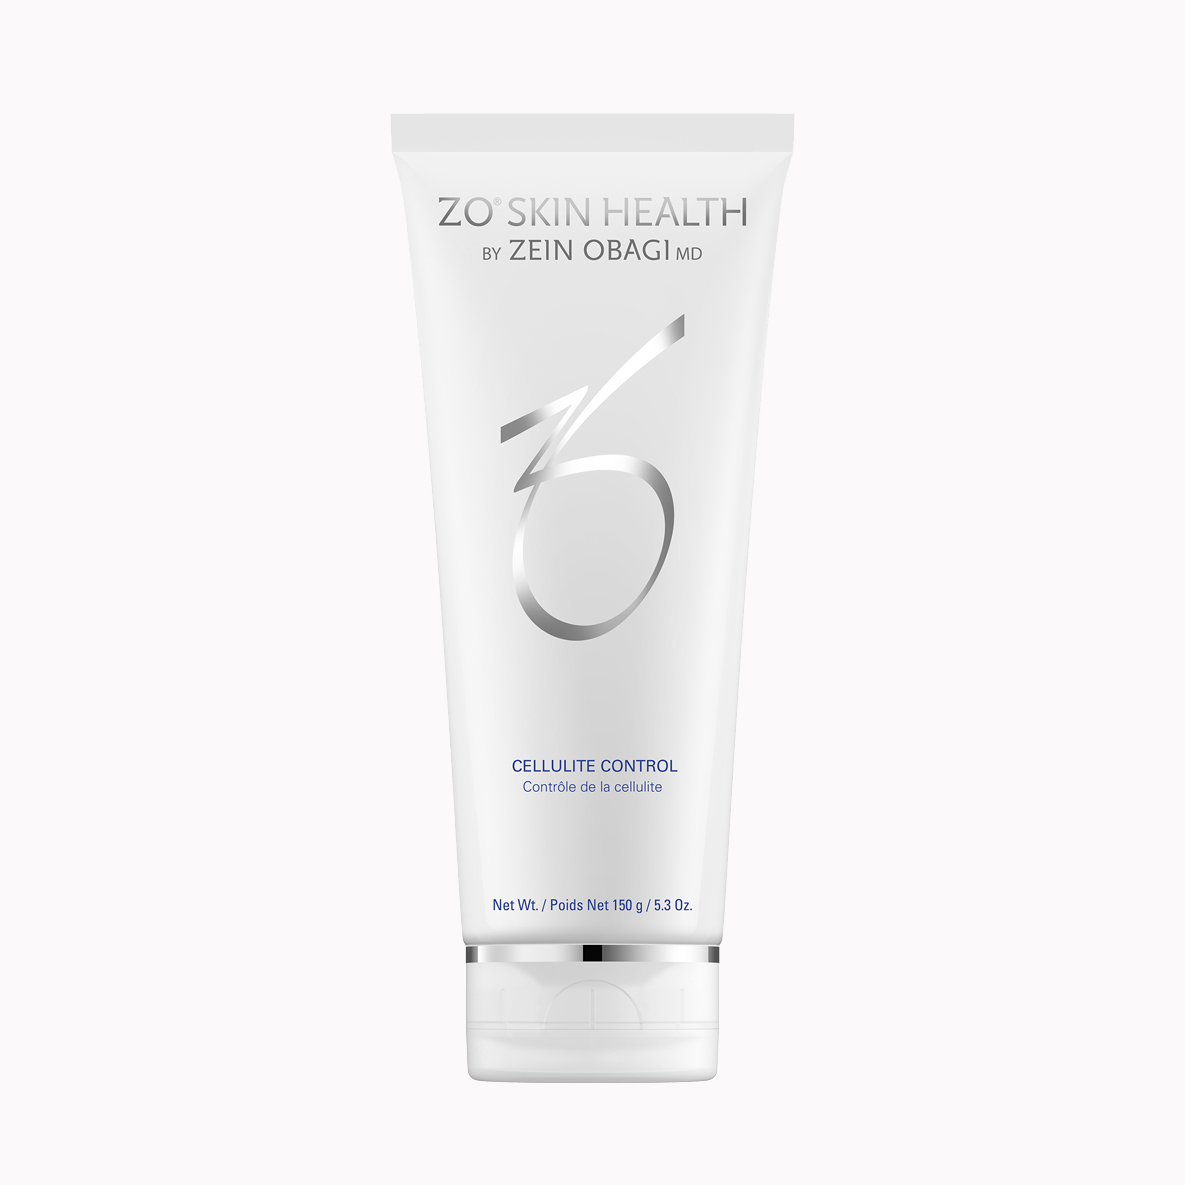 Dermanet.no - ZO Skin Health Cellulite Control